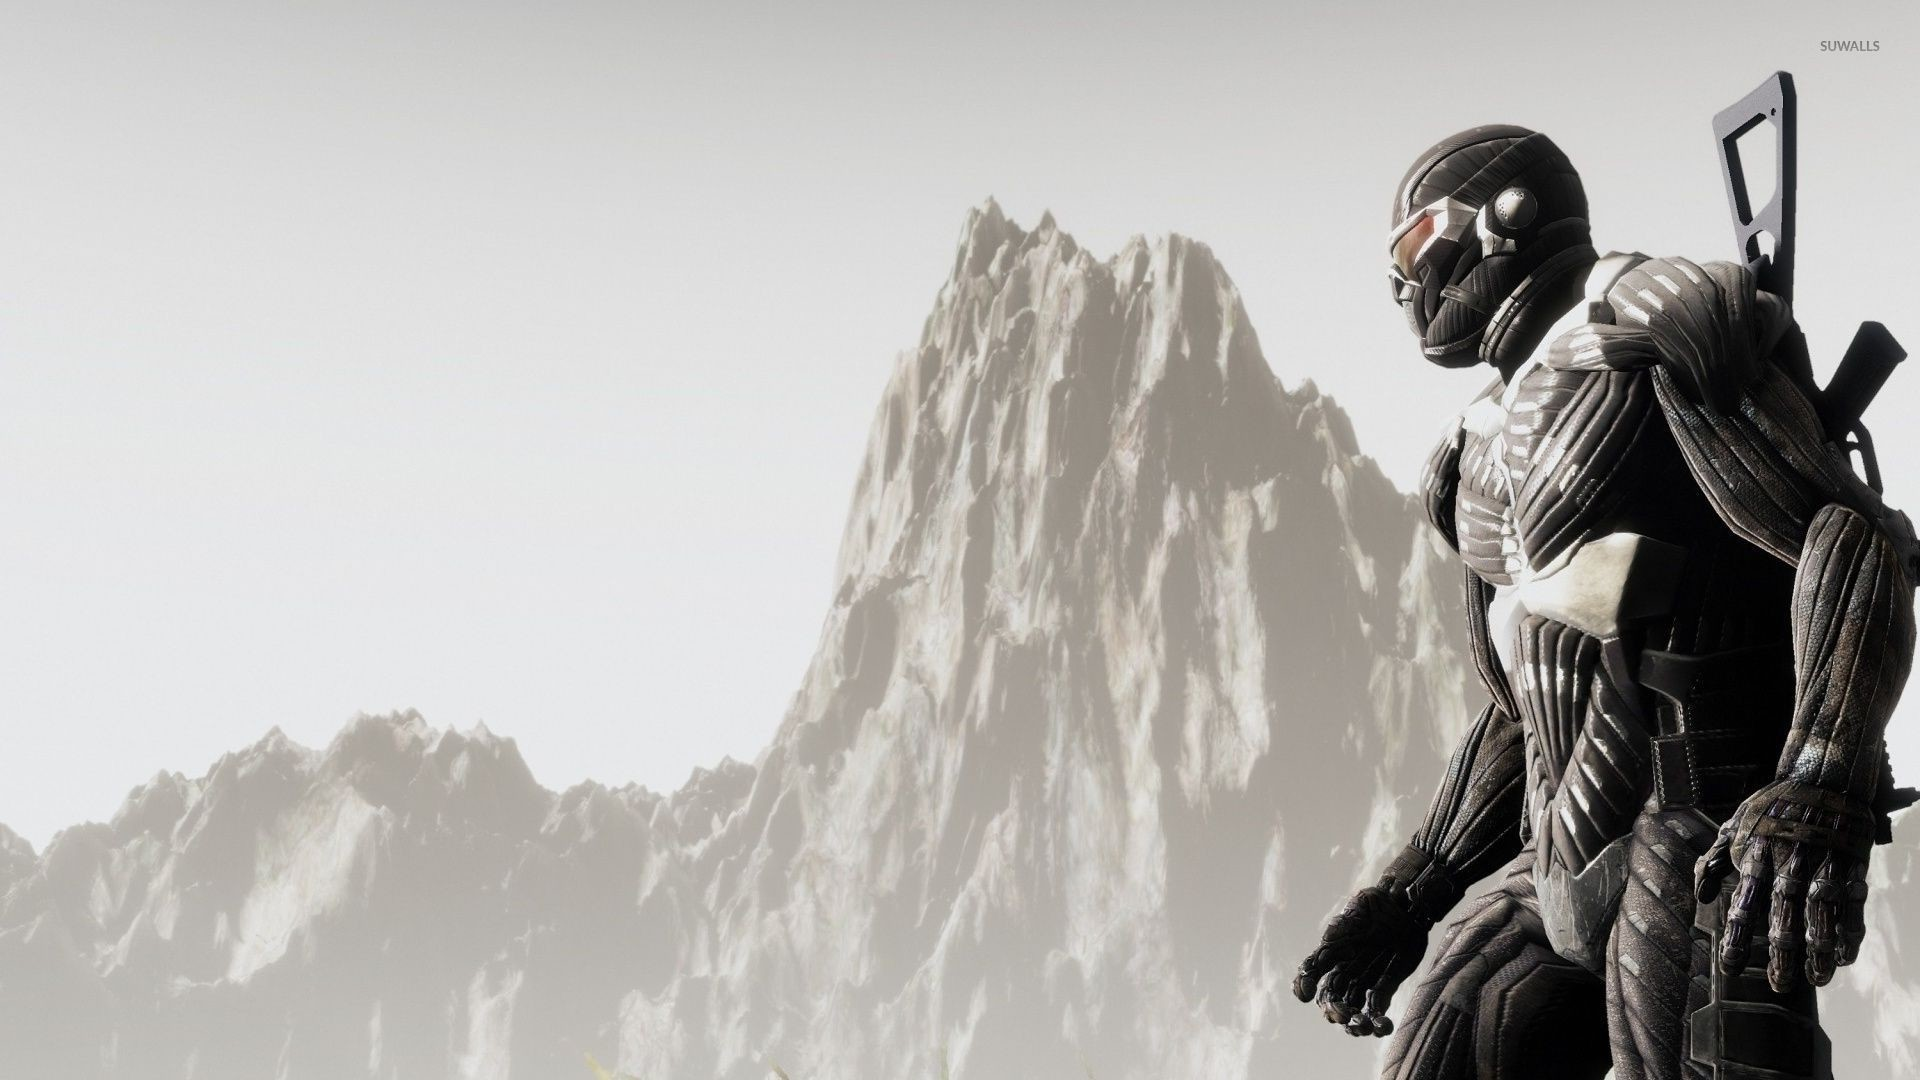 1920x1080 Nomad - Crysis 2 wallpaper